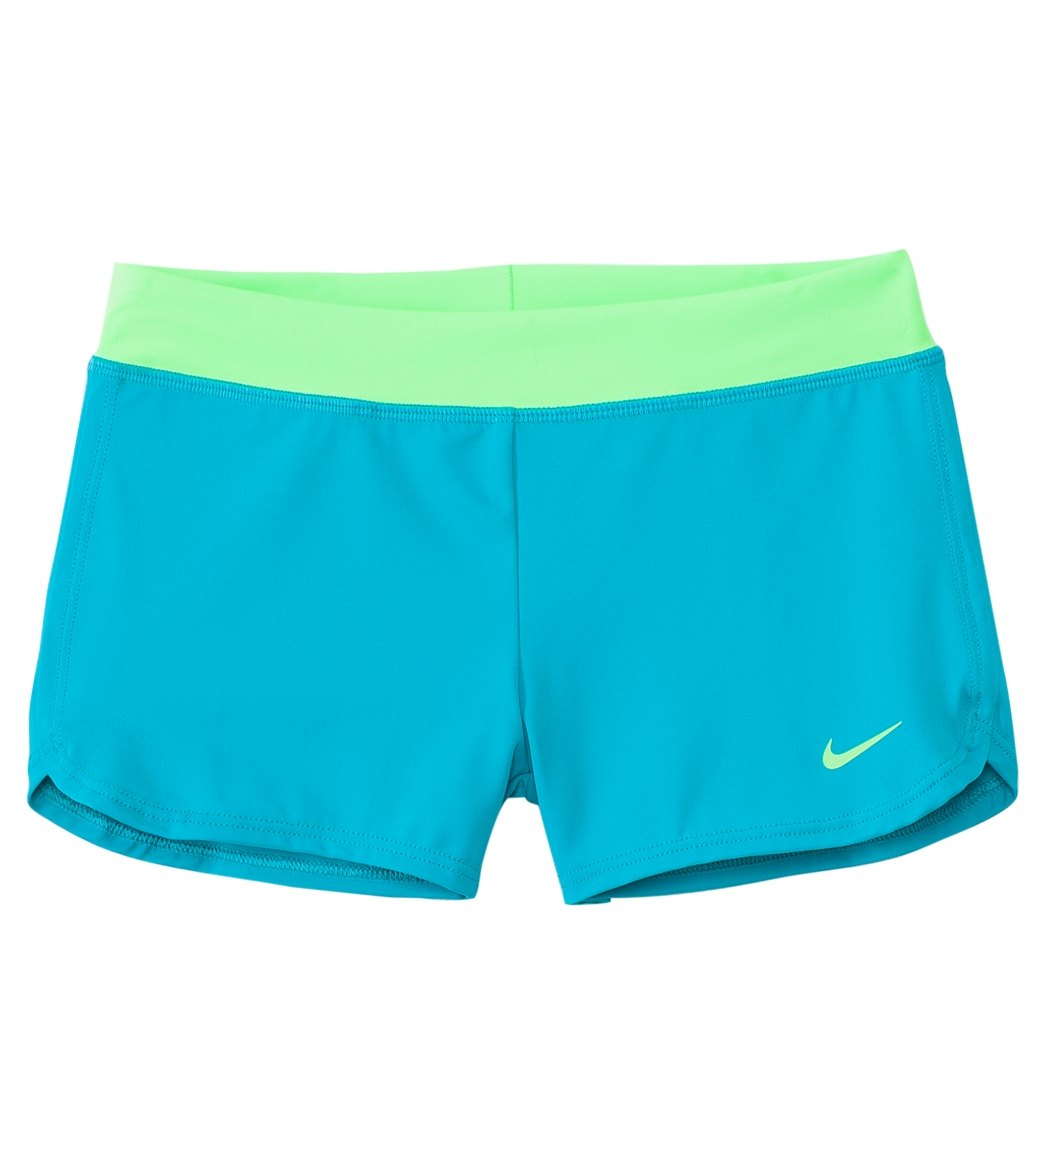 fbfe9d1a4a92f Nike Swimwear Girls' Swim Short Cover Up (7yrs-14yrs) at SwimOutlet.com